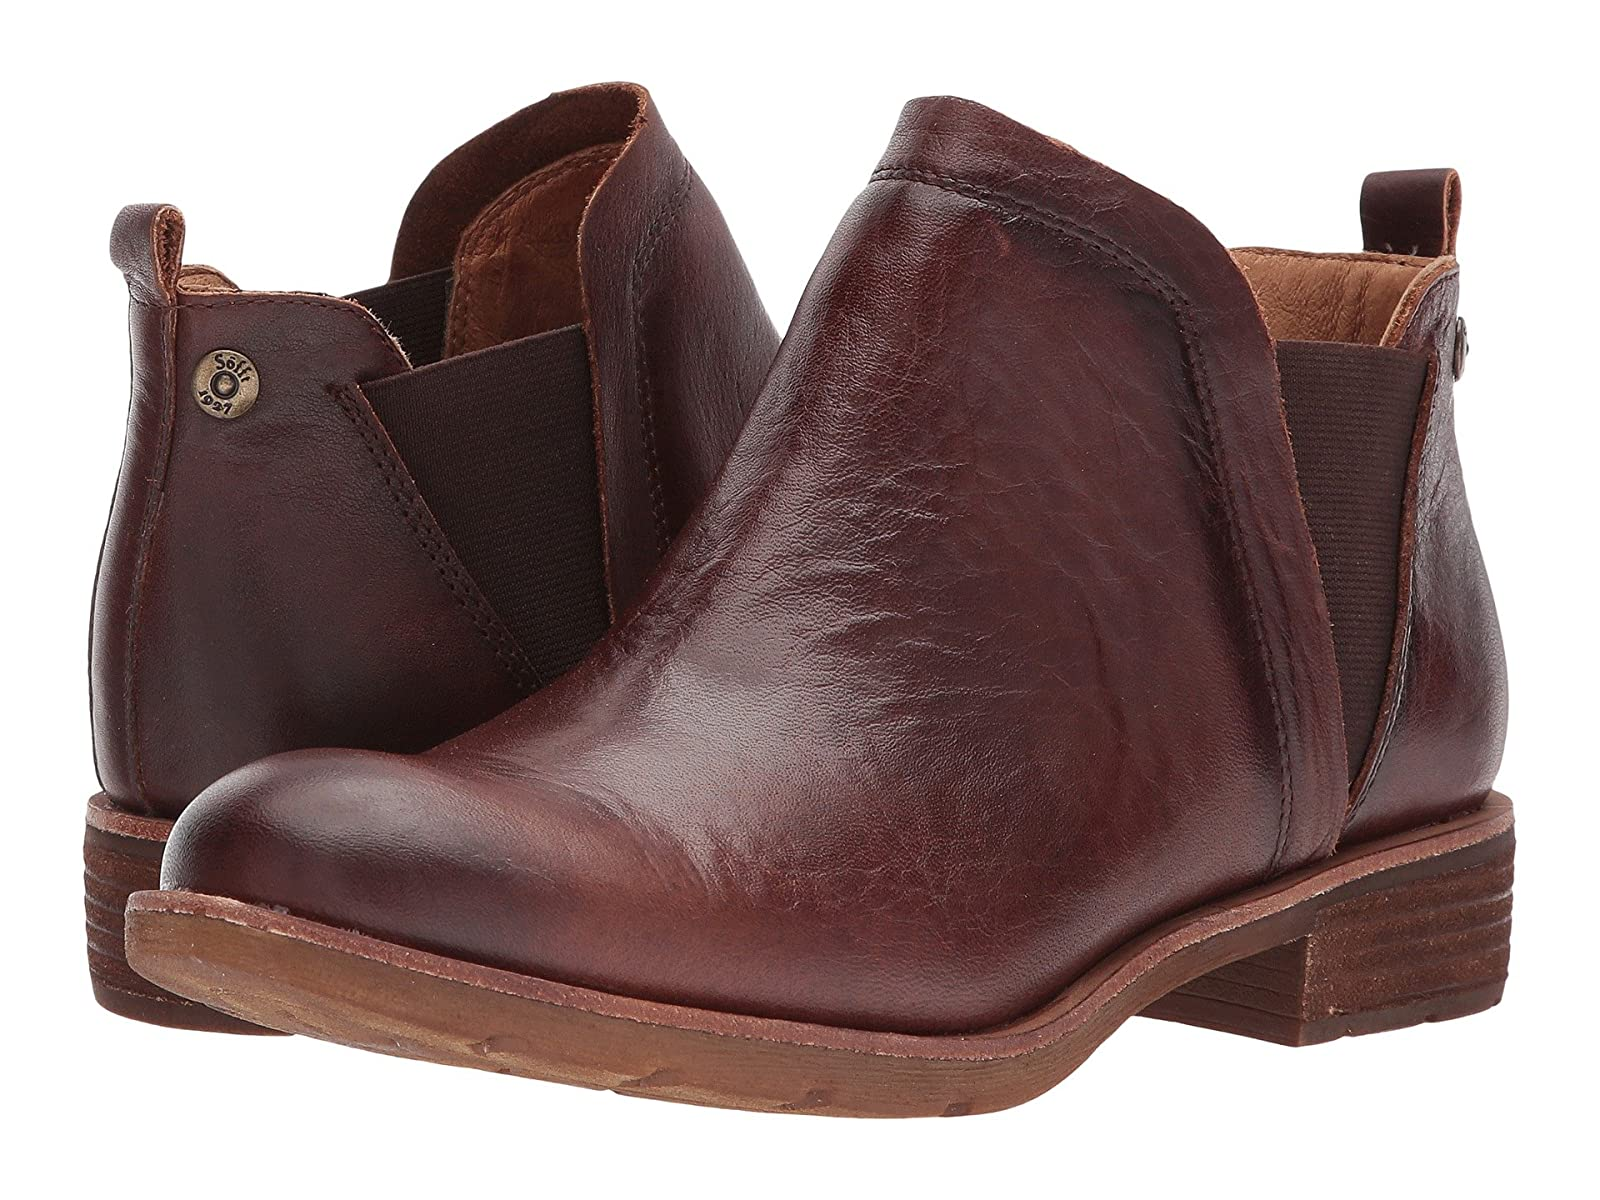 Sofft Bergamo WaterproofCheap and distinctive eye-catching shoes